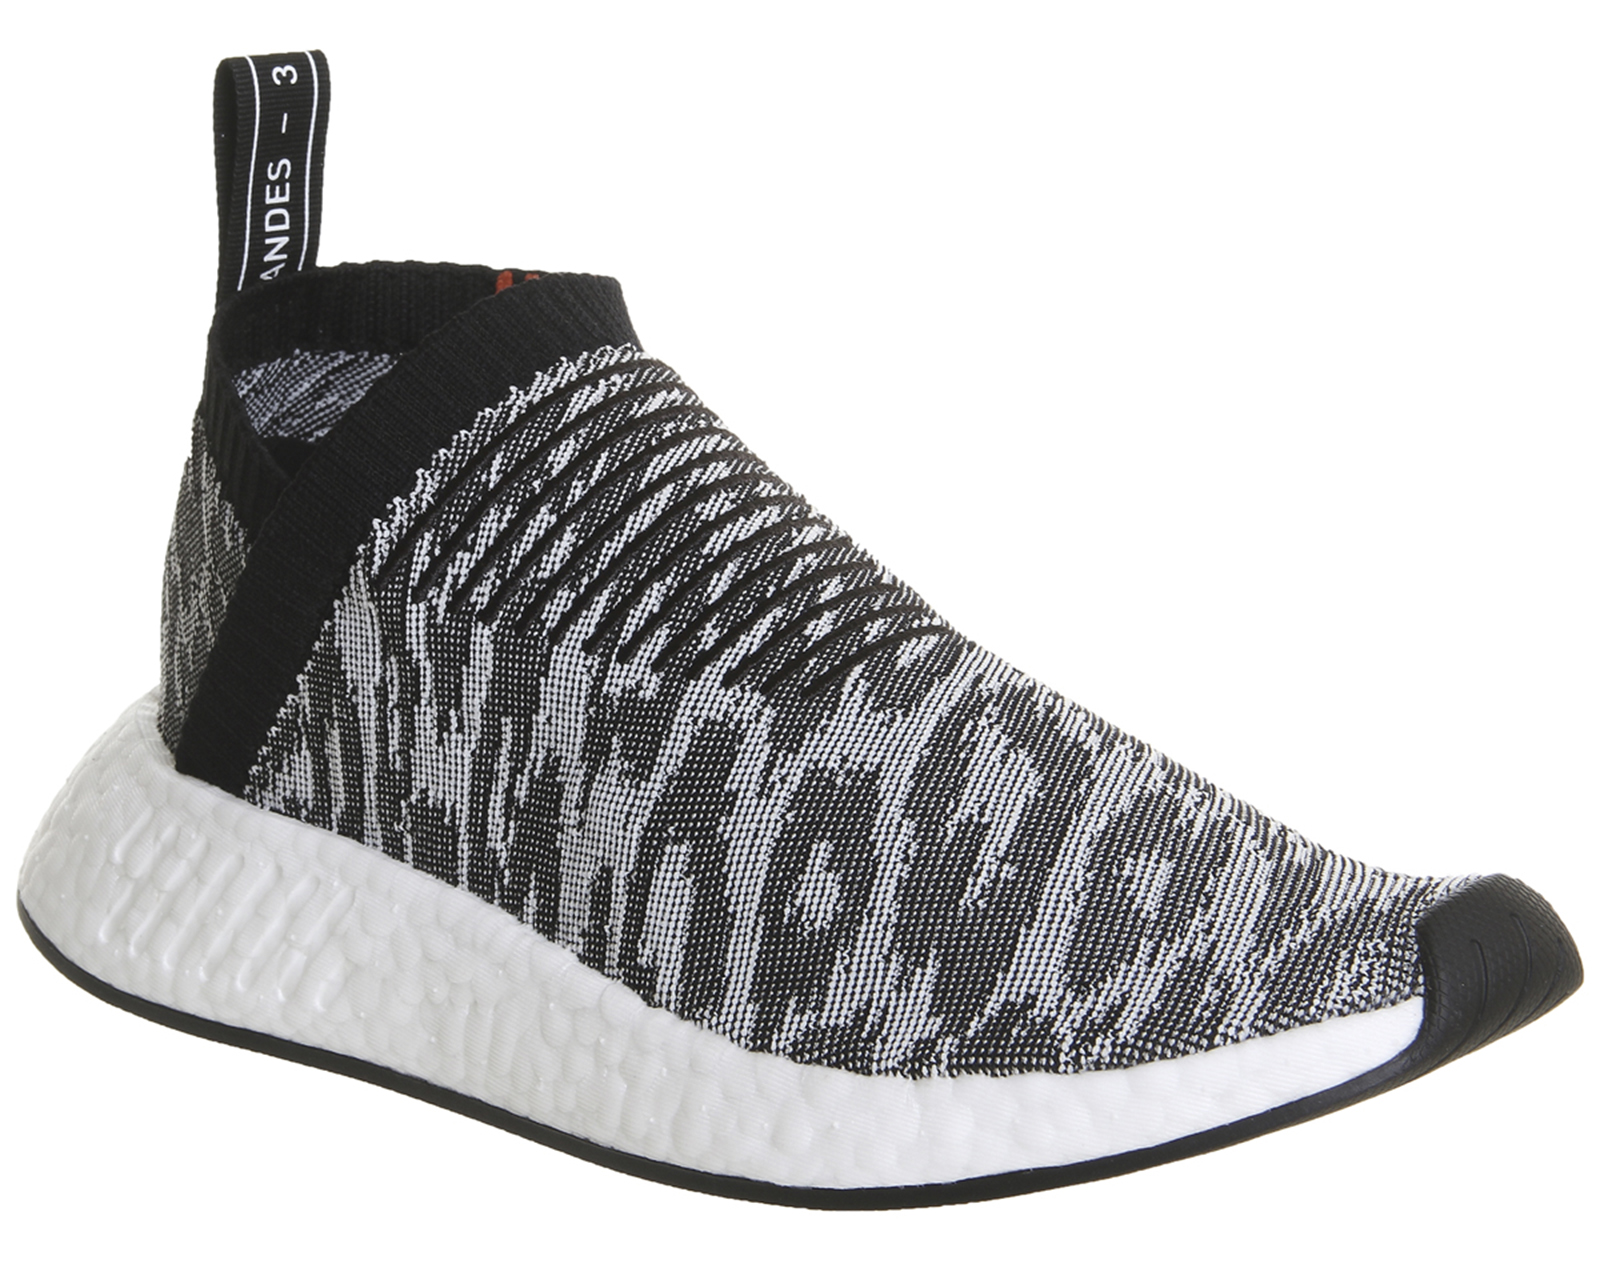 7cd6ae278e70f Sentinel Adidas Nmd City Sock 2 BLACK FUTURE HARVEST PK Trainers Shoes